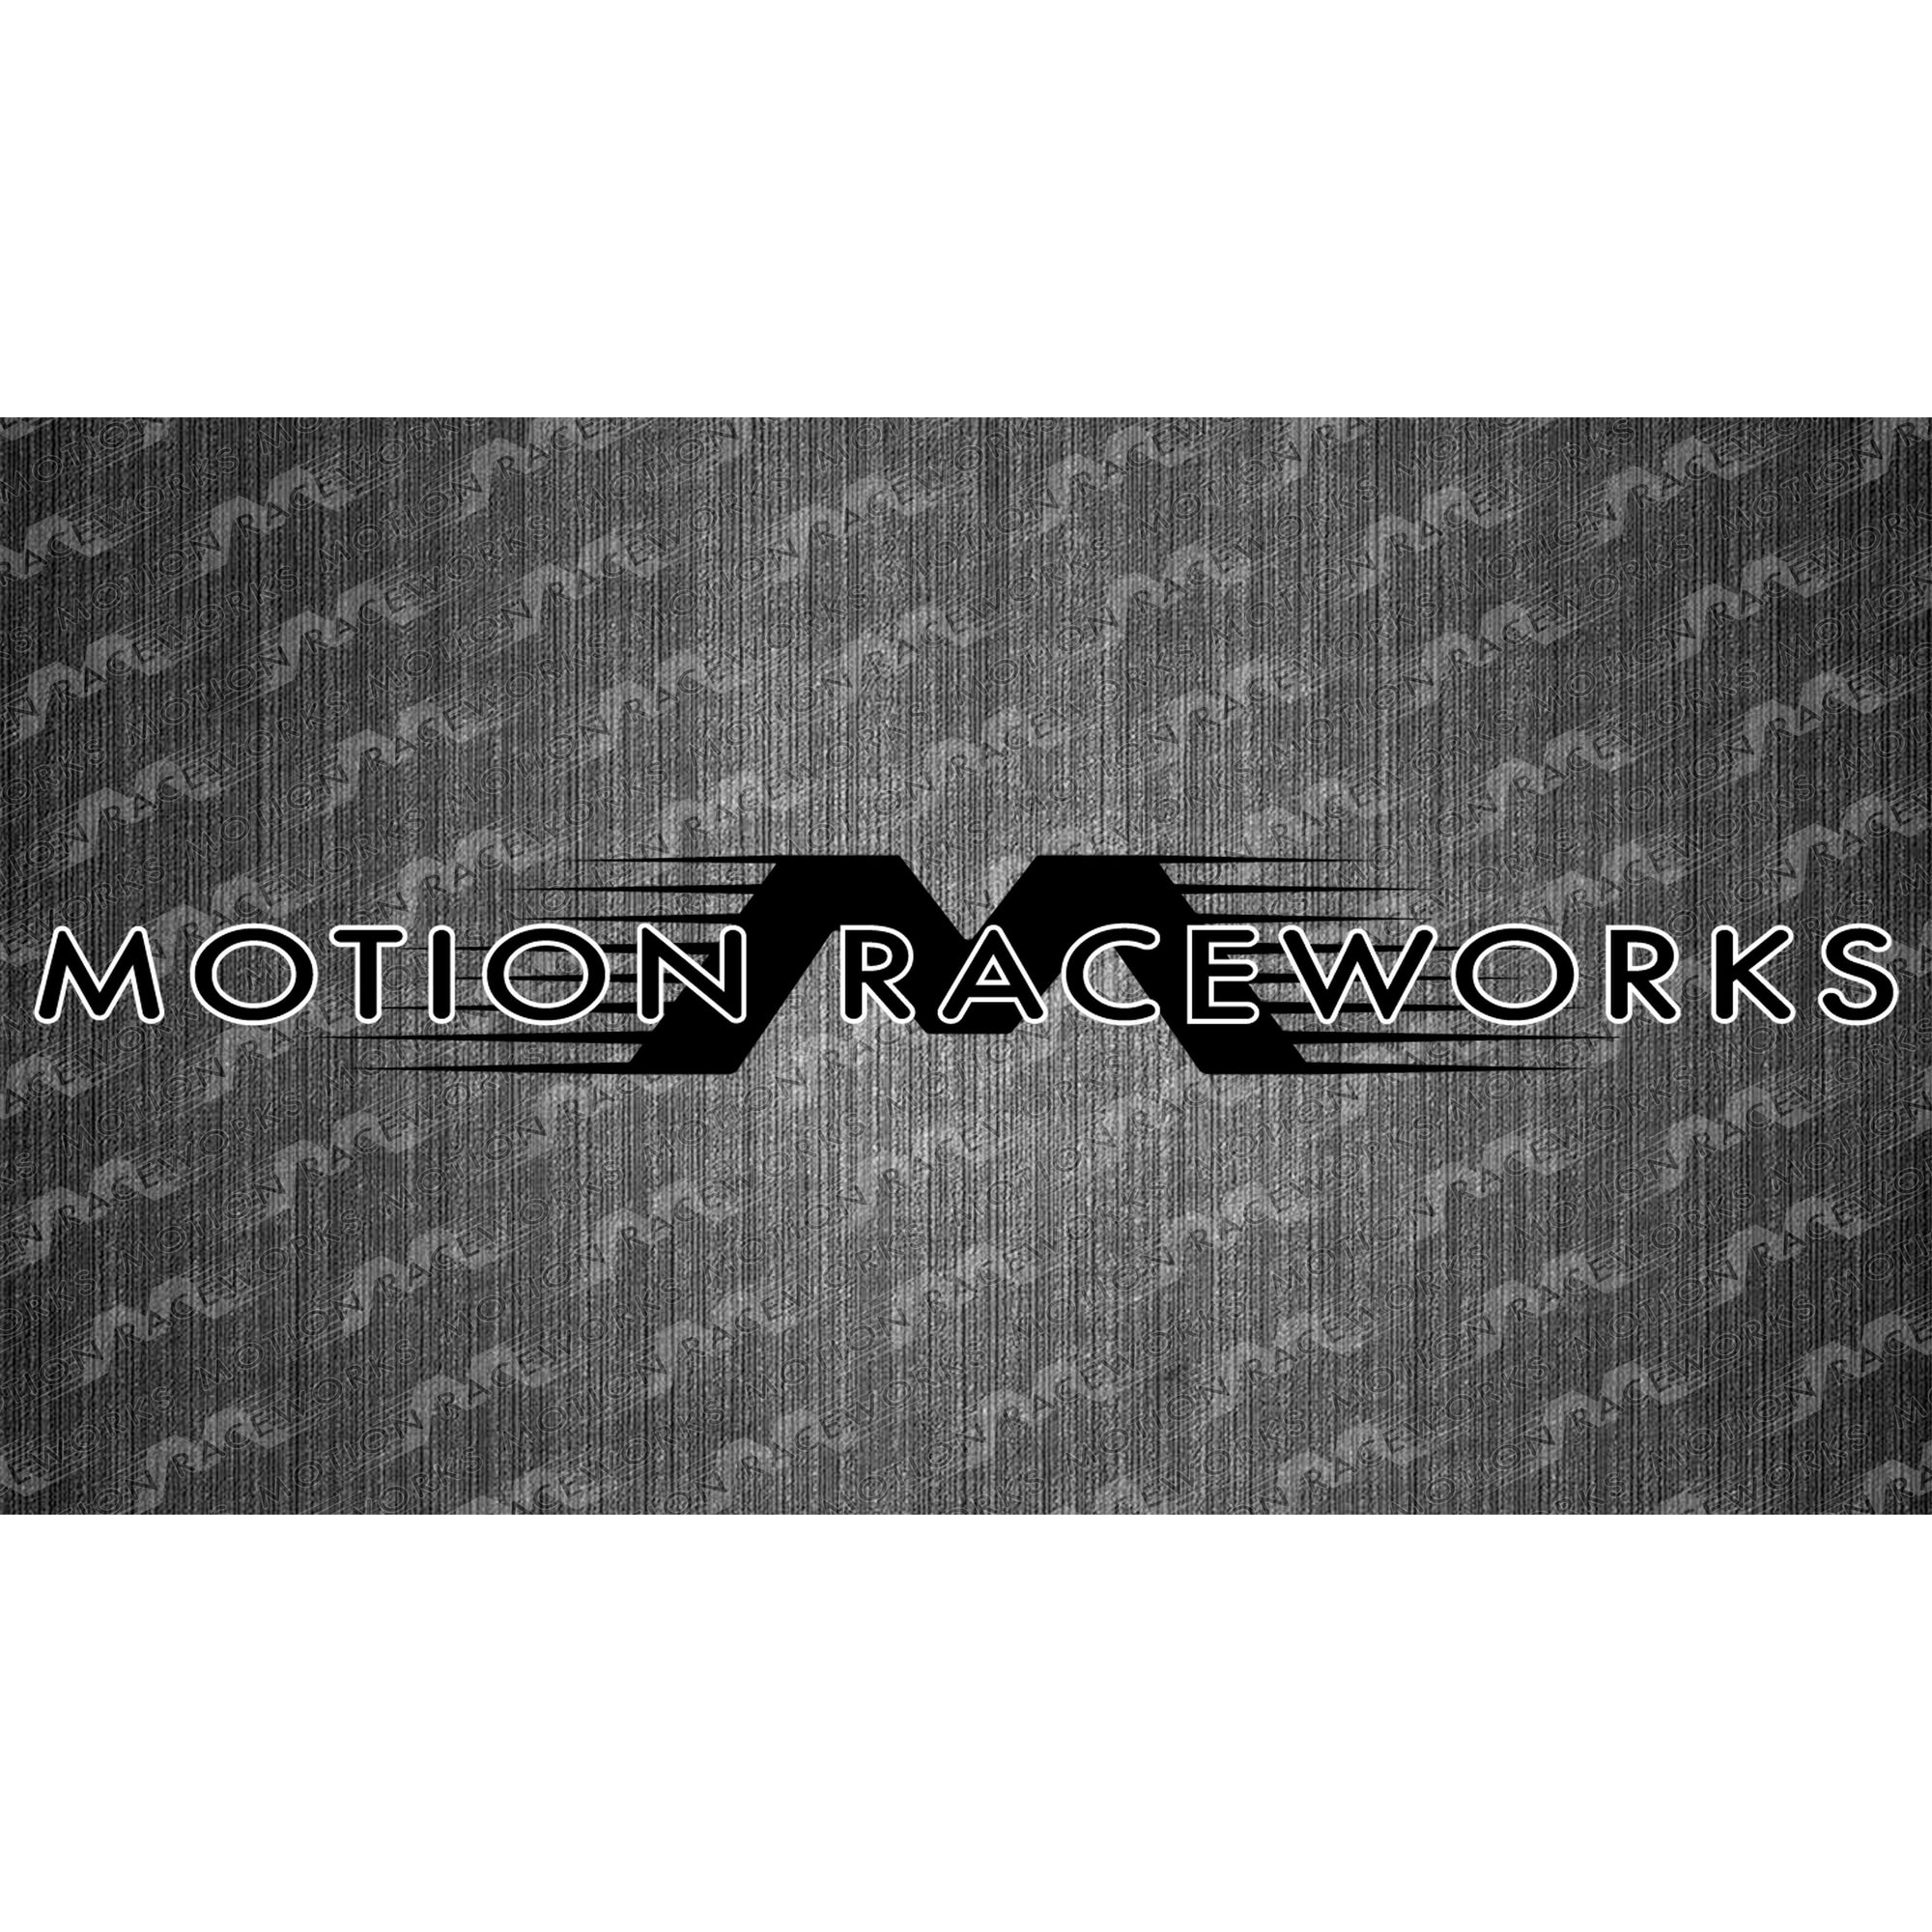 Black White Motion Raceworks Decal 12 X3 21185 north brady st, davenport (ia), 52806, united states. motion raceworks